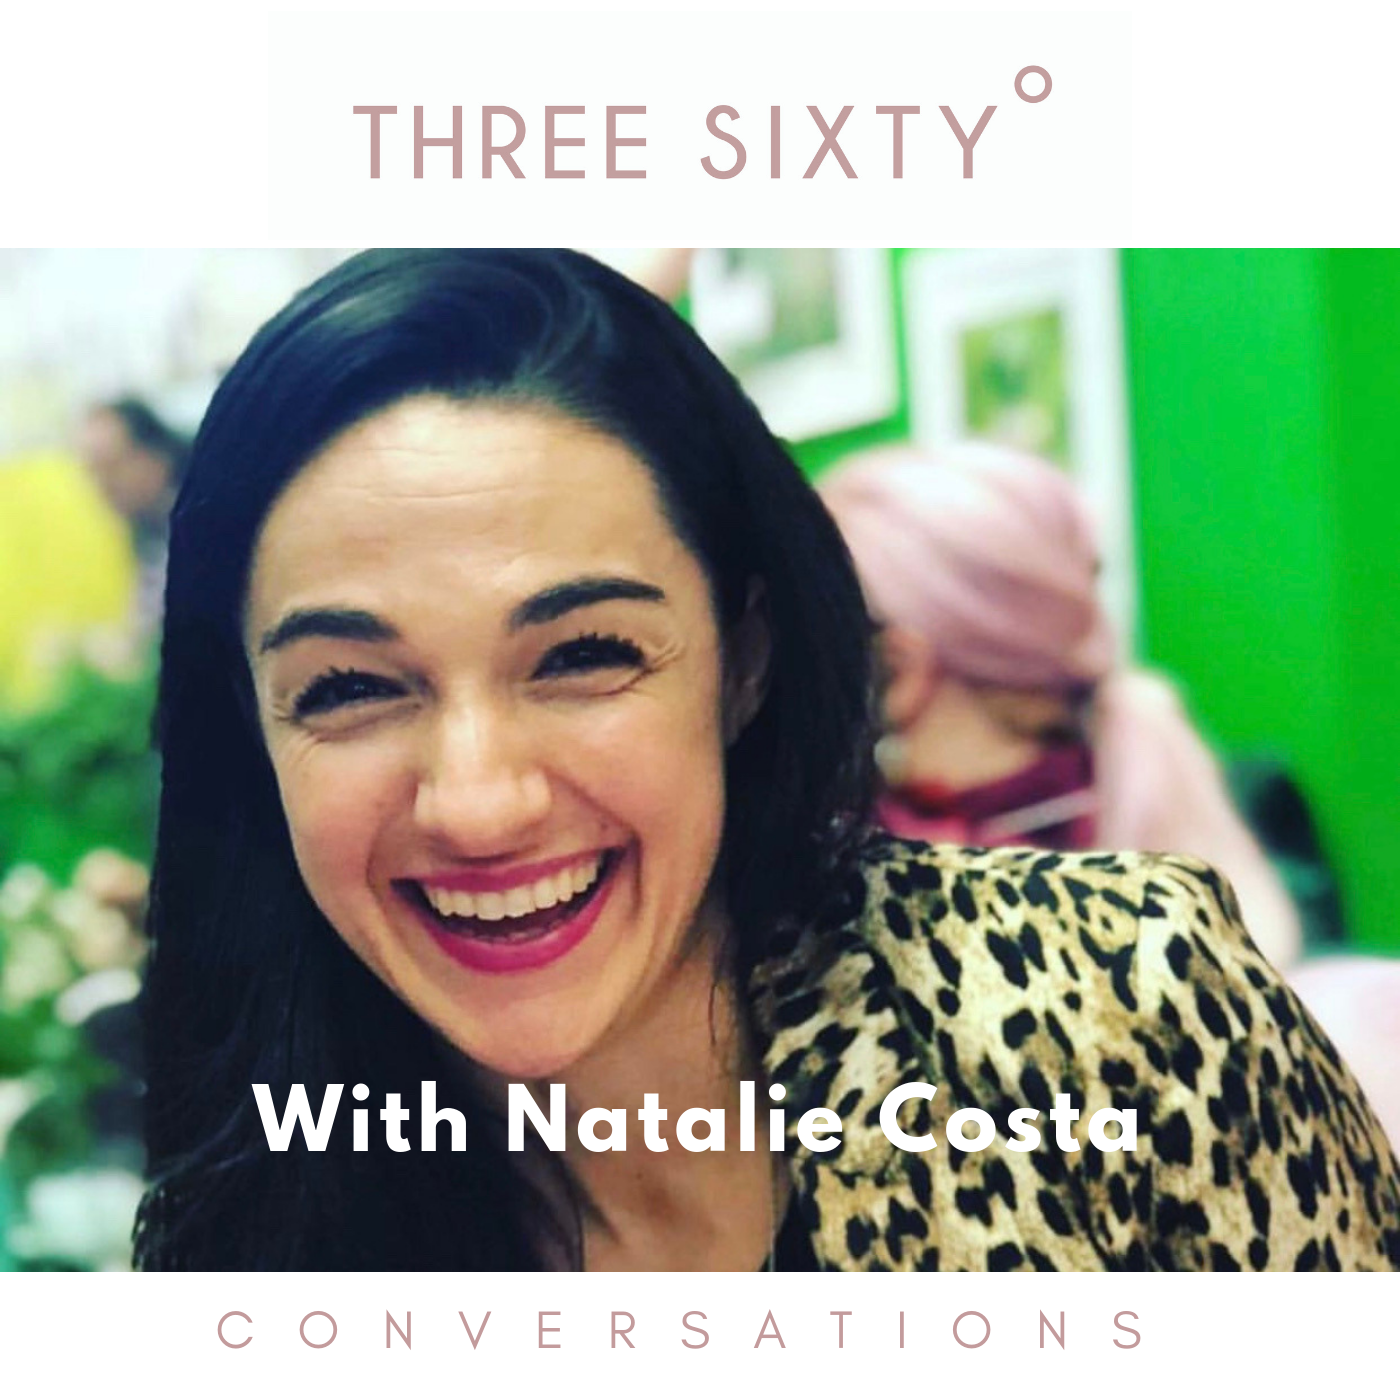 Natalie Costa, Power thoughts, education coach, children and anxiety, female founder, live three sixty, tamu Thomas, Lucy sheridan, the big leap, money mindset, wellness is wellth